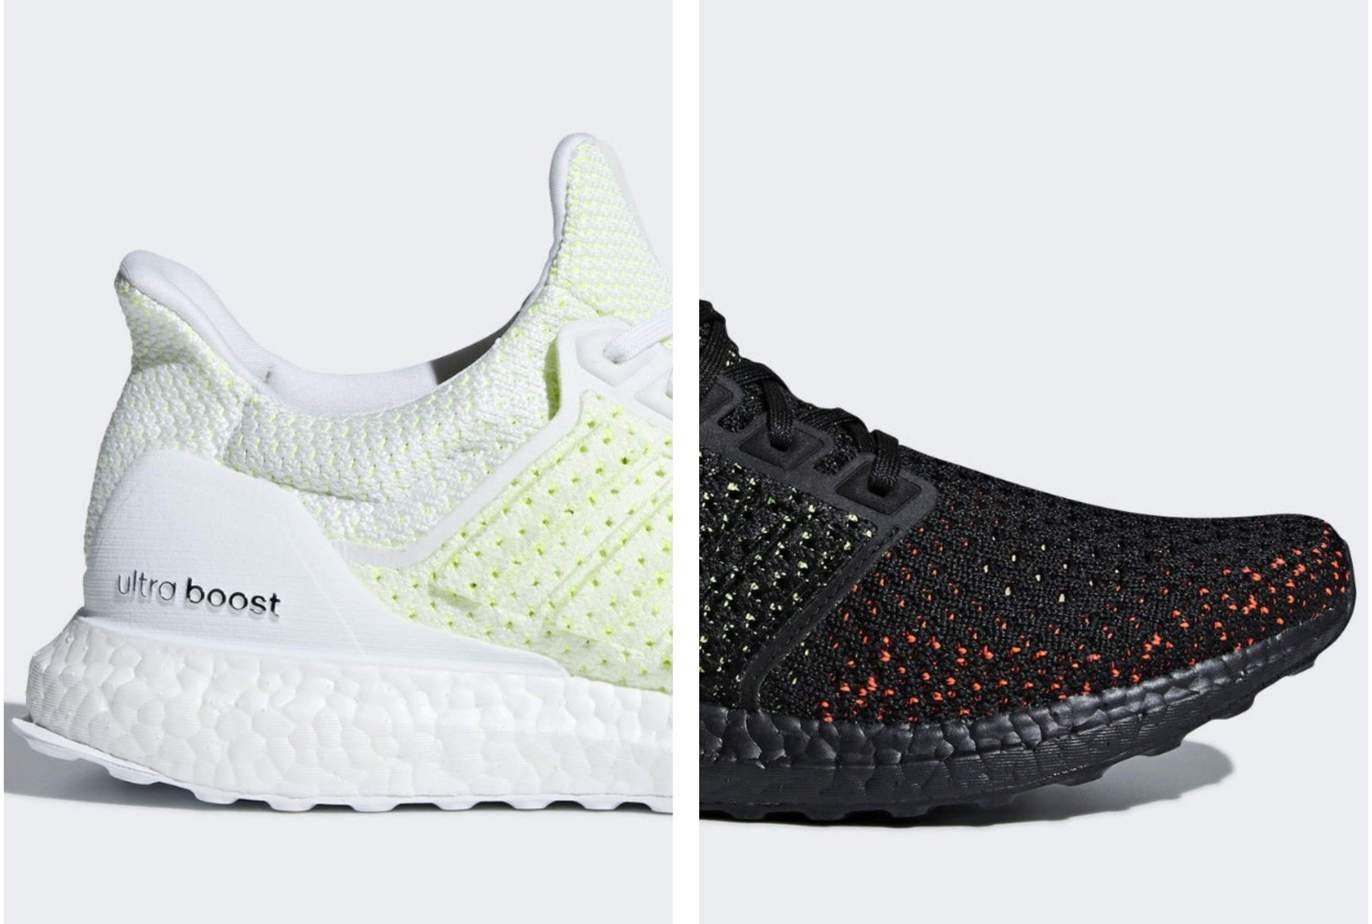 abcaff61f The adidas Ultra Boost Clima is off to an incredible start. Fans of the  running silhouette are calling it one of the most comfortable iterations of  the ...